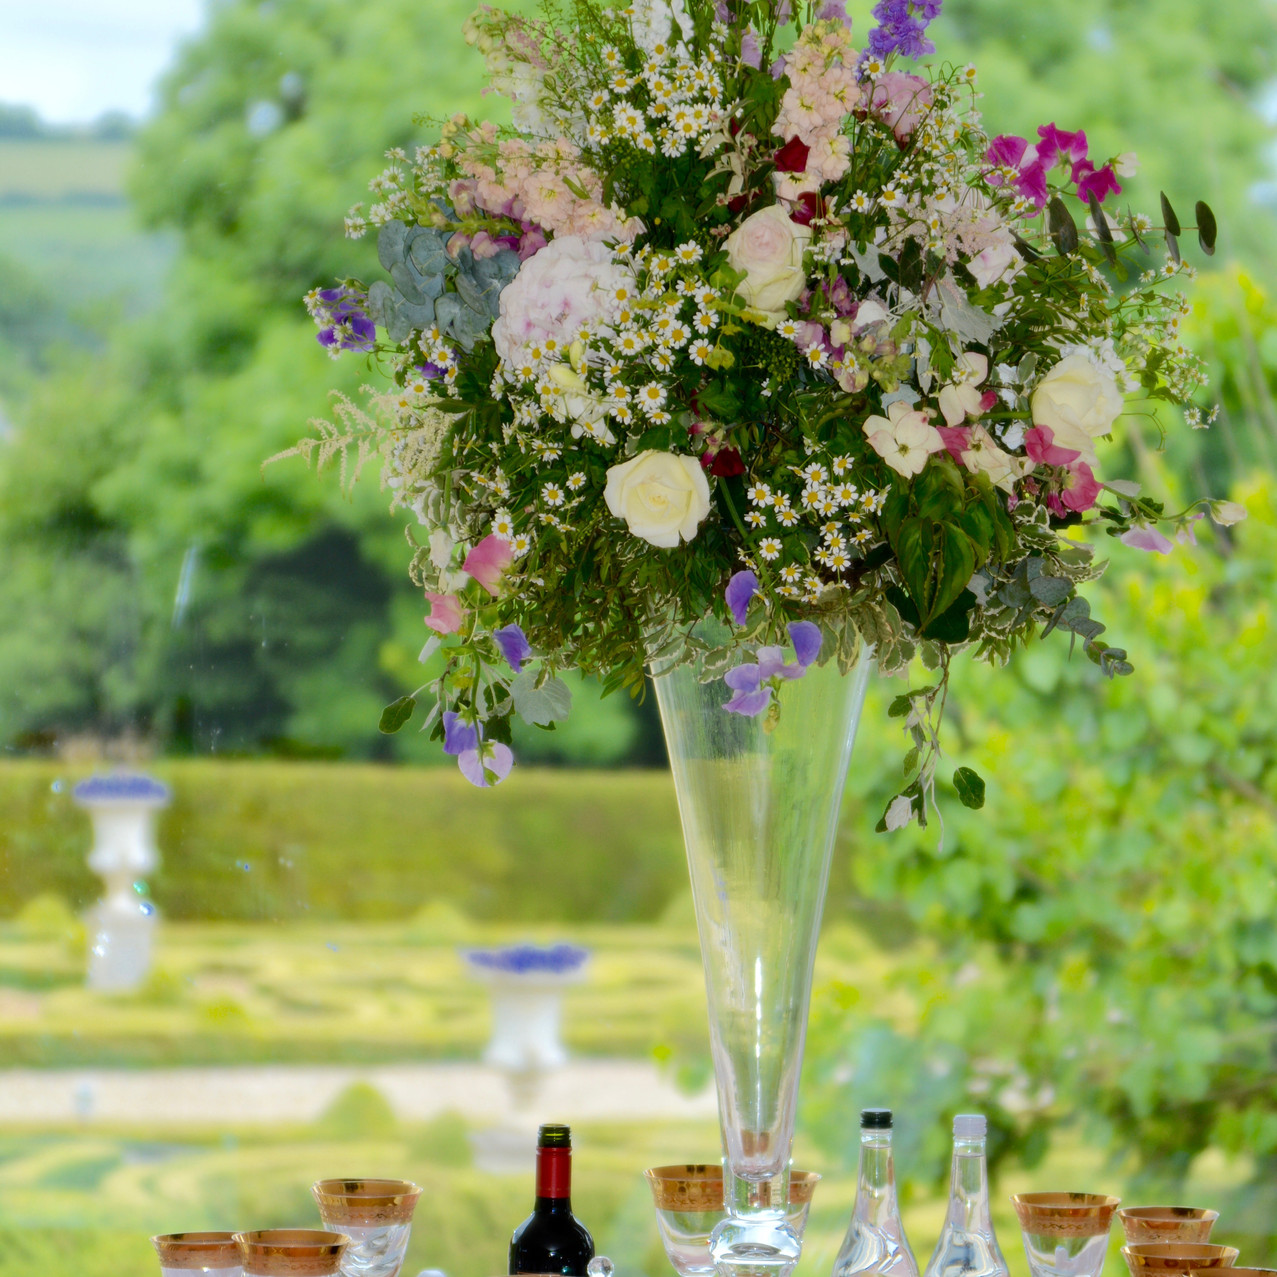 Tall (80cm) bow-tie style vase, centred on 7 of the 15 guest tables. Complete with a large garden arrangement of seasonal flowers. The designs imitated the content as seen thoughout the gardens of Kingston House.